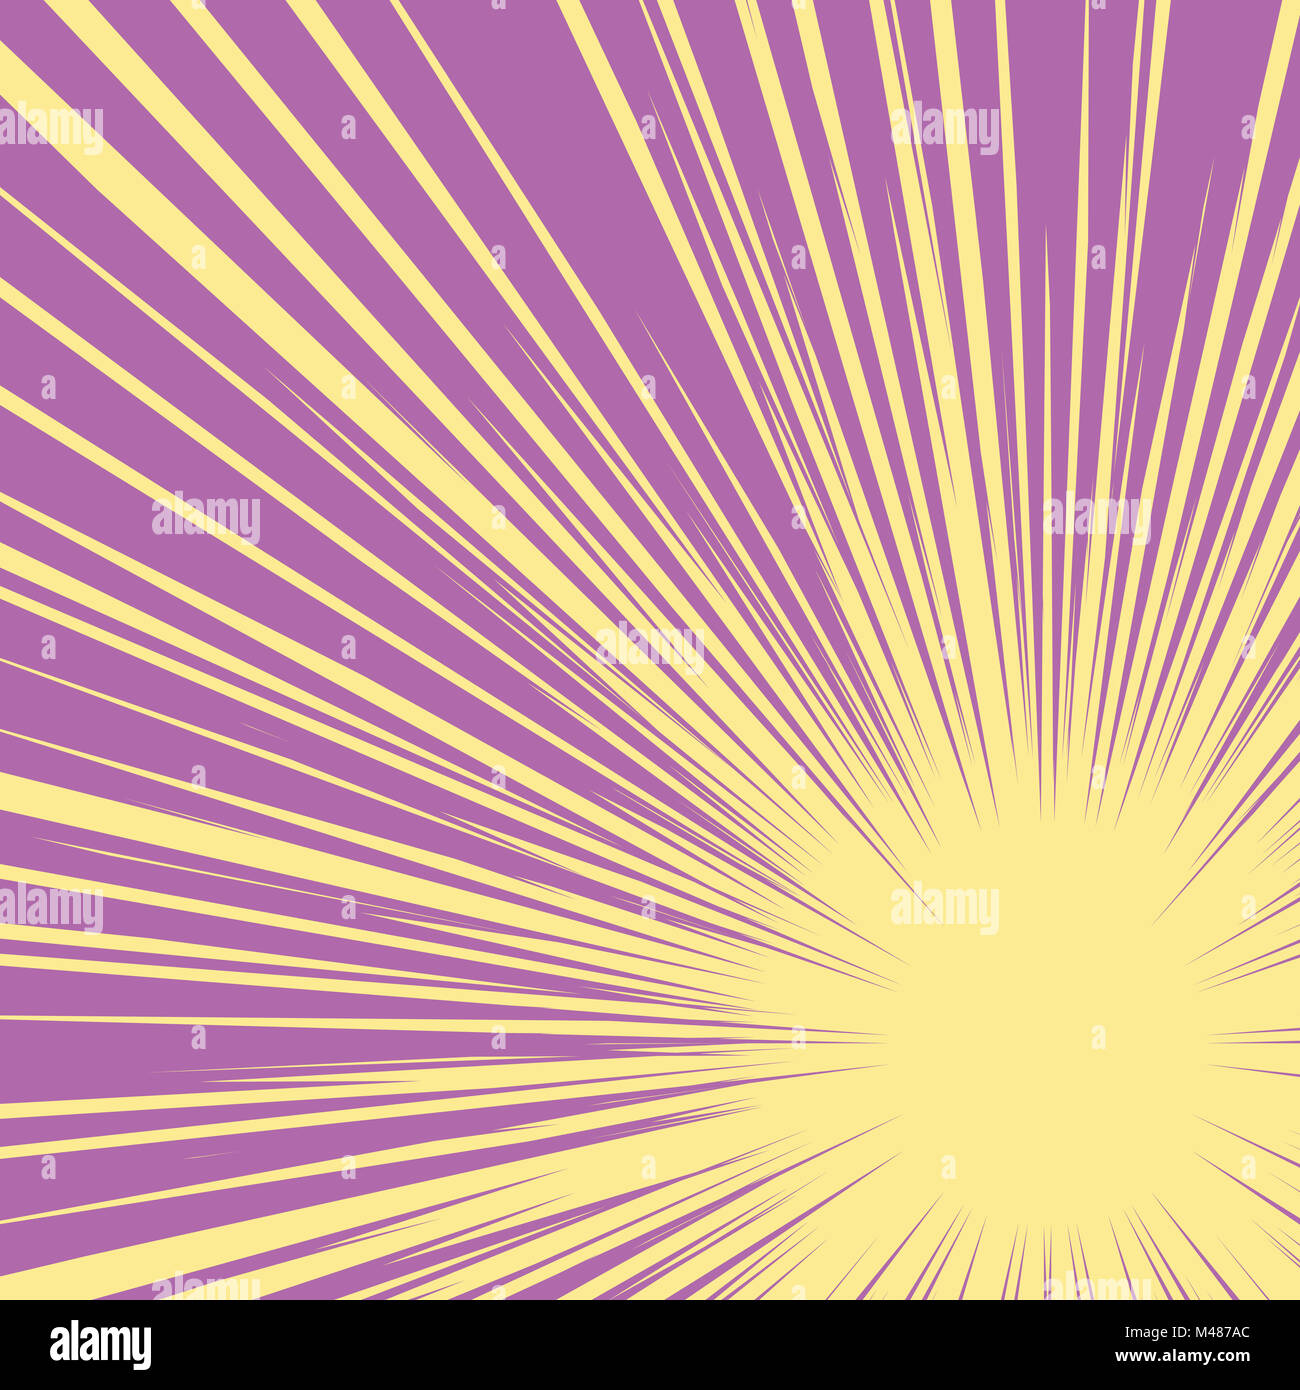 Bright burst background retro comic pop art - Stock Image